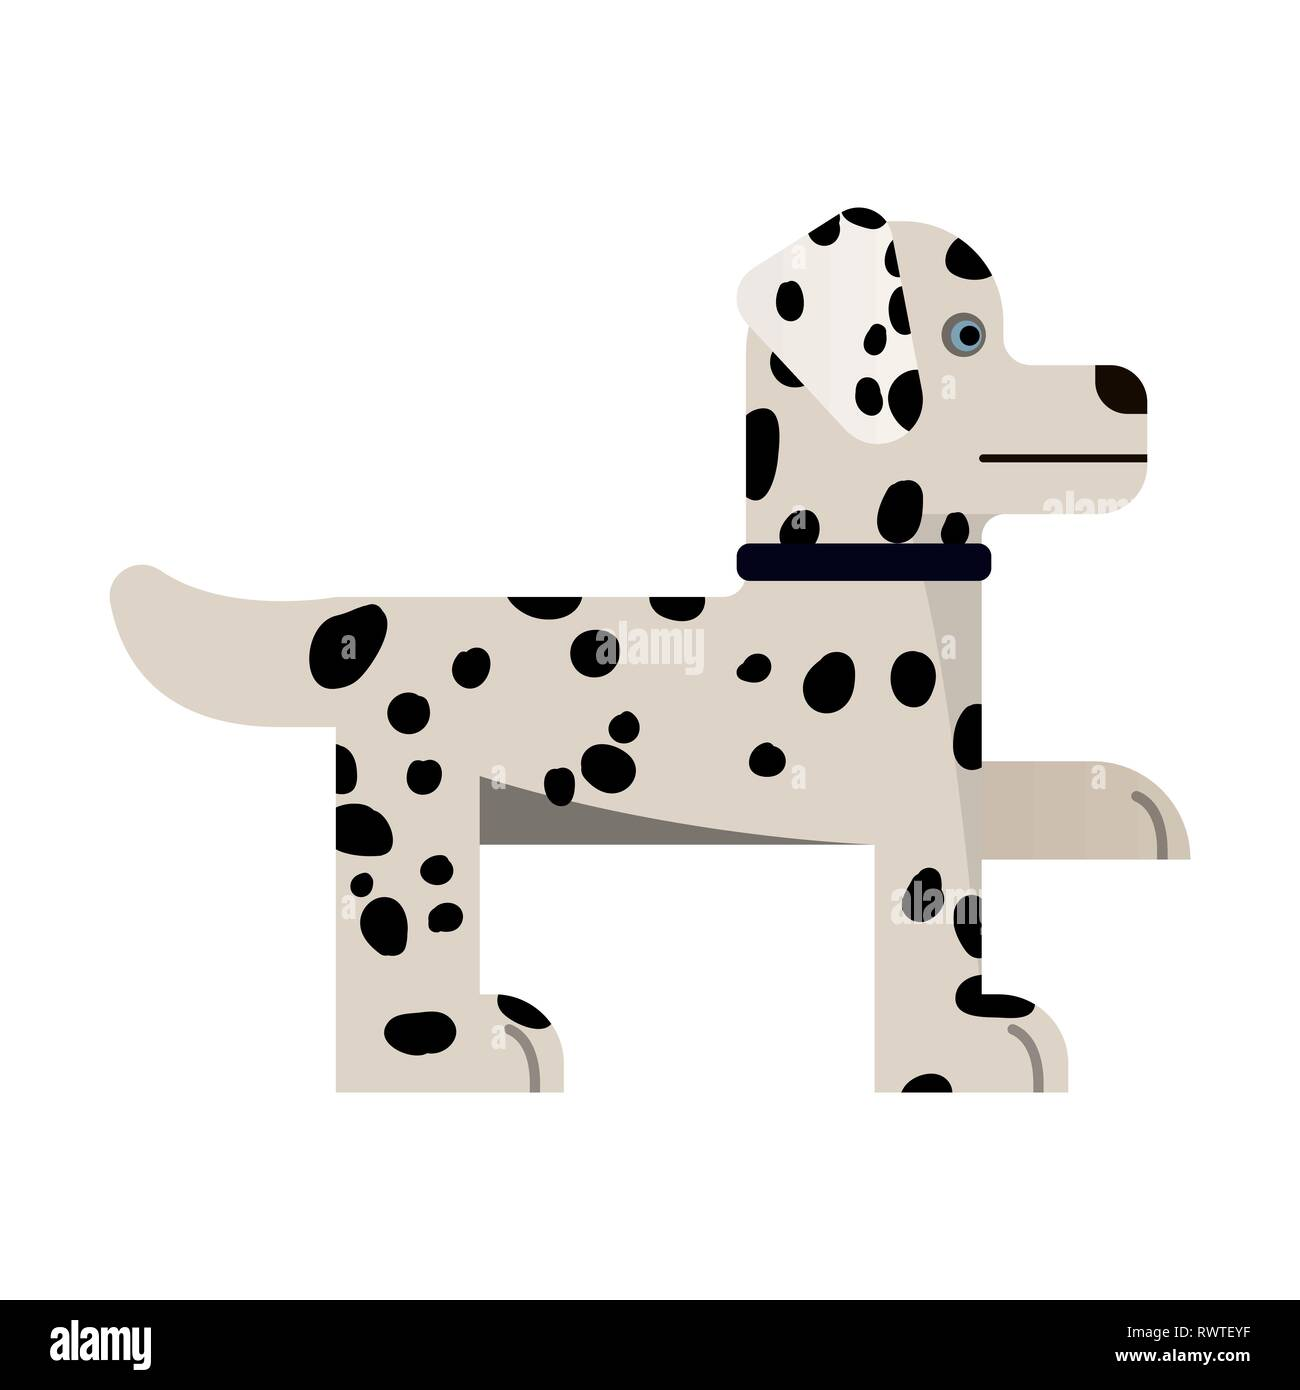 Dalmatian stand. Purebred dog gives a paw. Vector illustration. Flat icon. Stock Vector